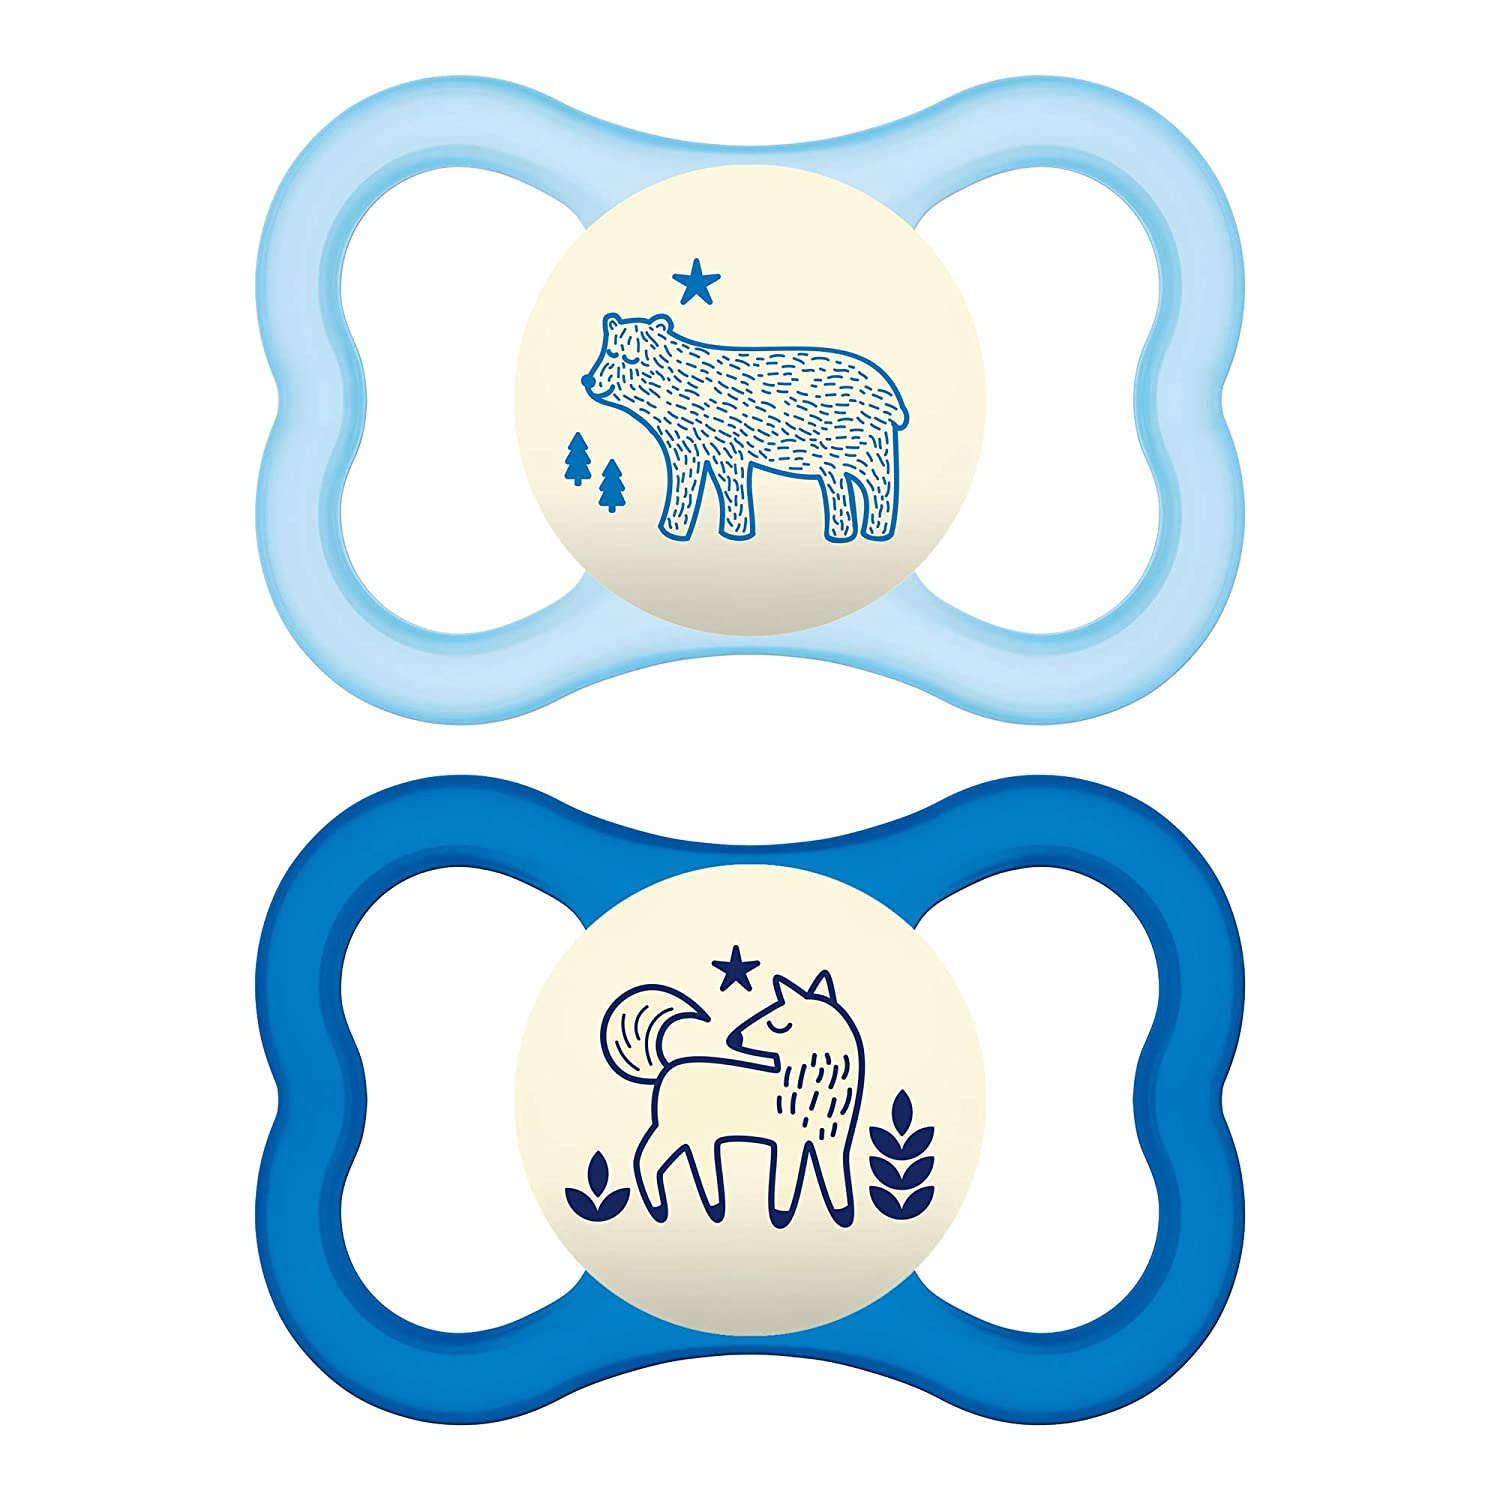 MAM Glow In the Dark Sensitive Skin Pacifiers, Baby Pacifier 6+ Months, Best Pacifier for Breastfed Babies,